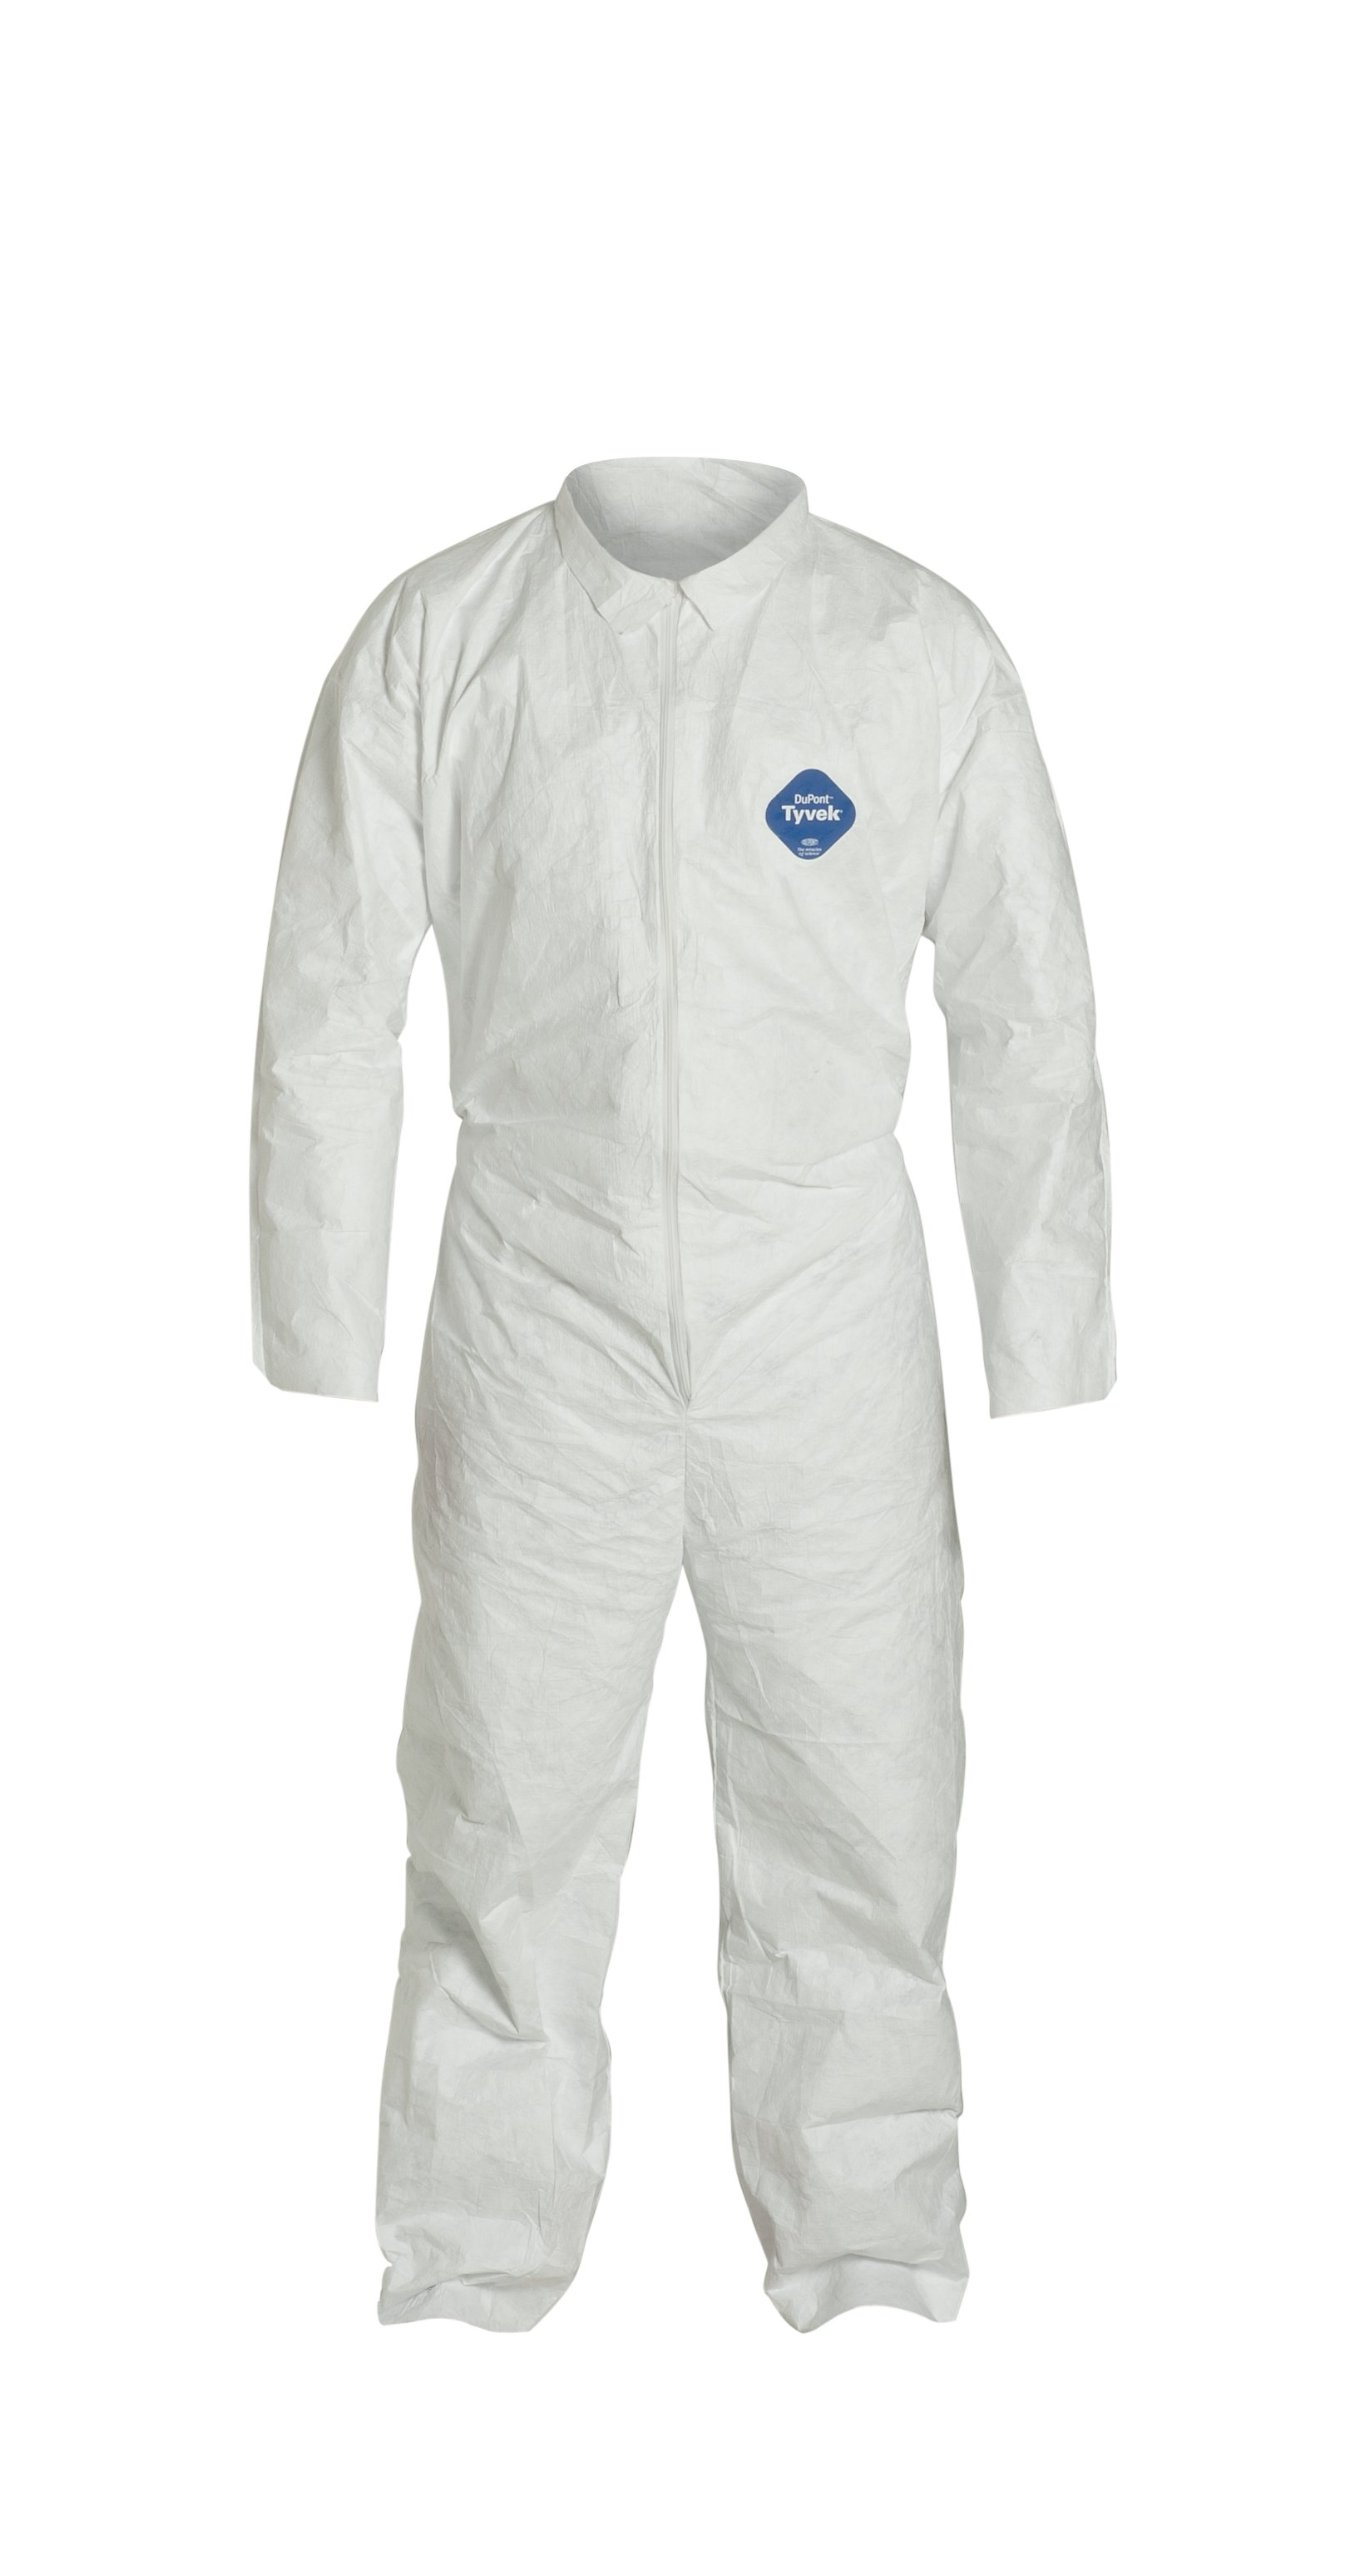 DuPont Tyvek 400 TY120S Disposable Protective Coverall, White, 4X-Large (Pack of 6) by DuPont (Image #1)